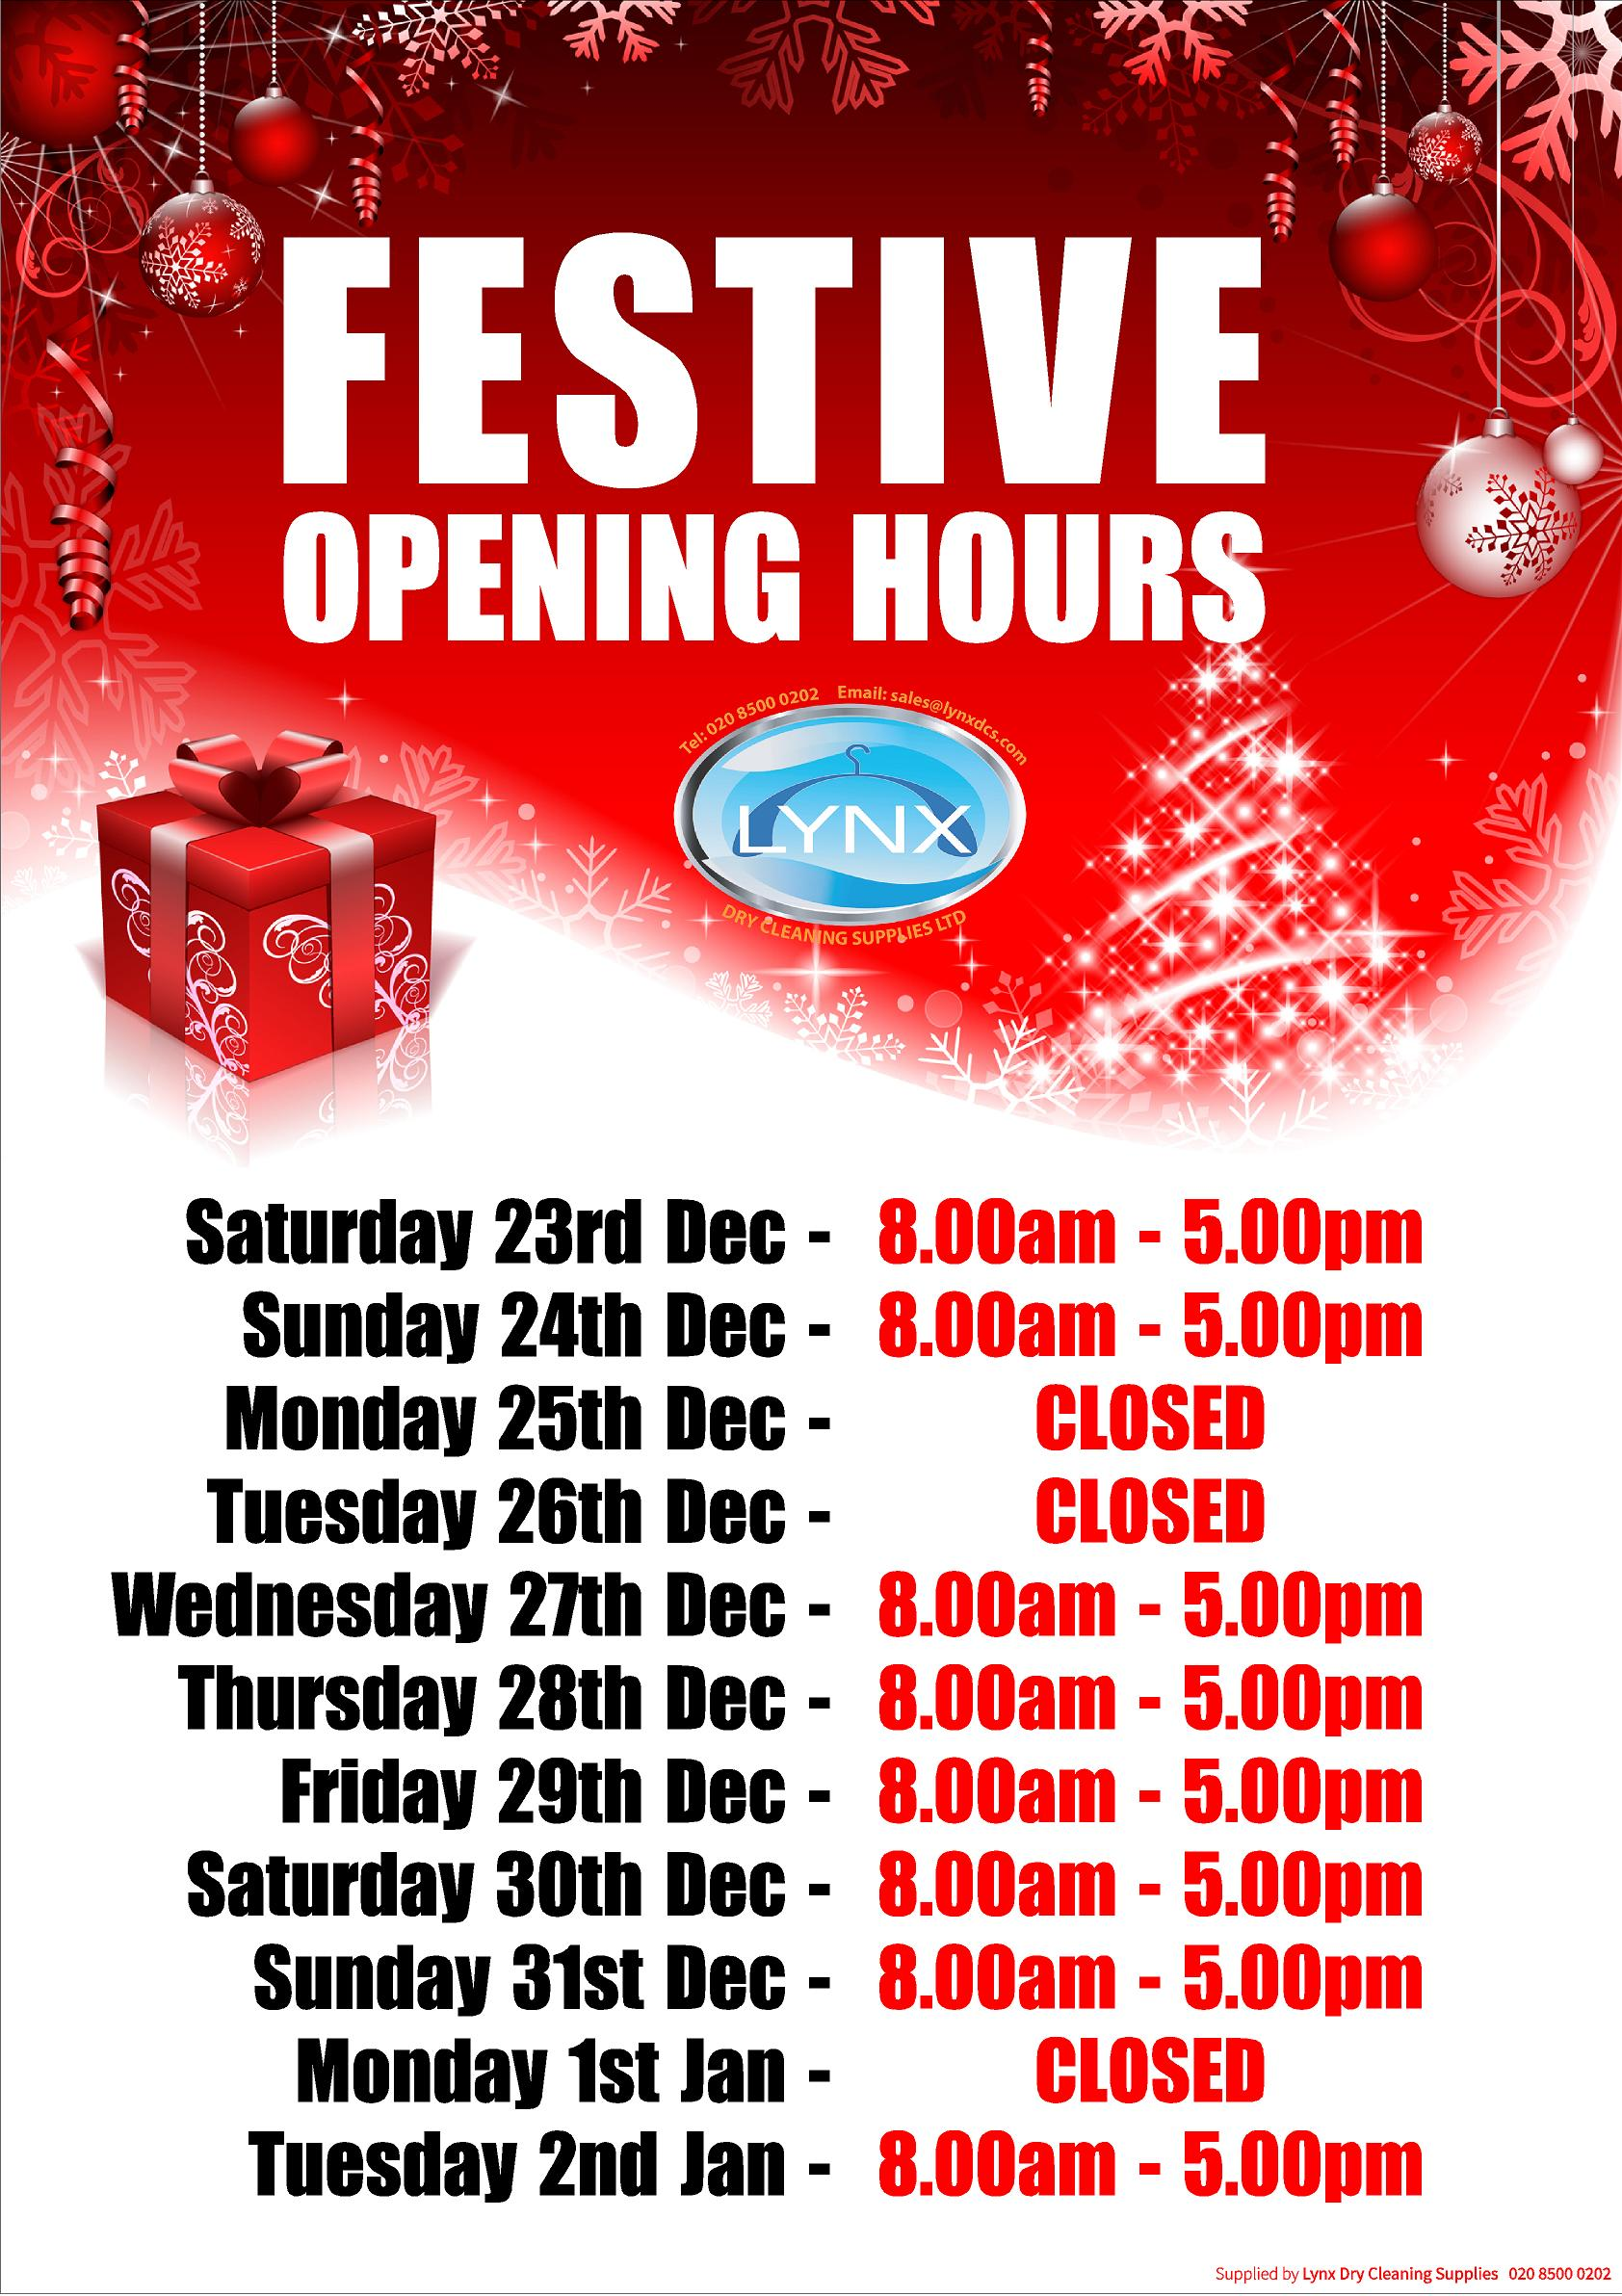 Personalised Christmas Opening Hours Poster Lynxdcs